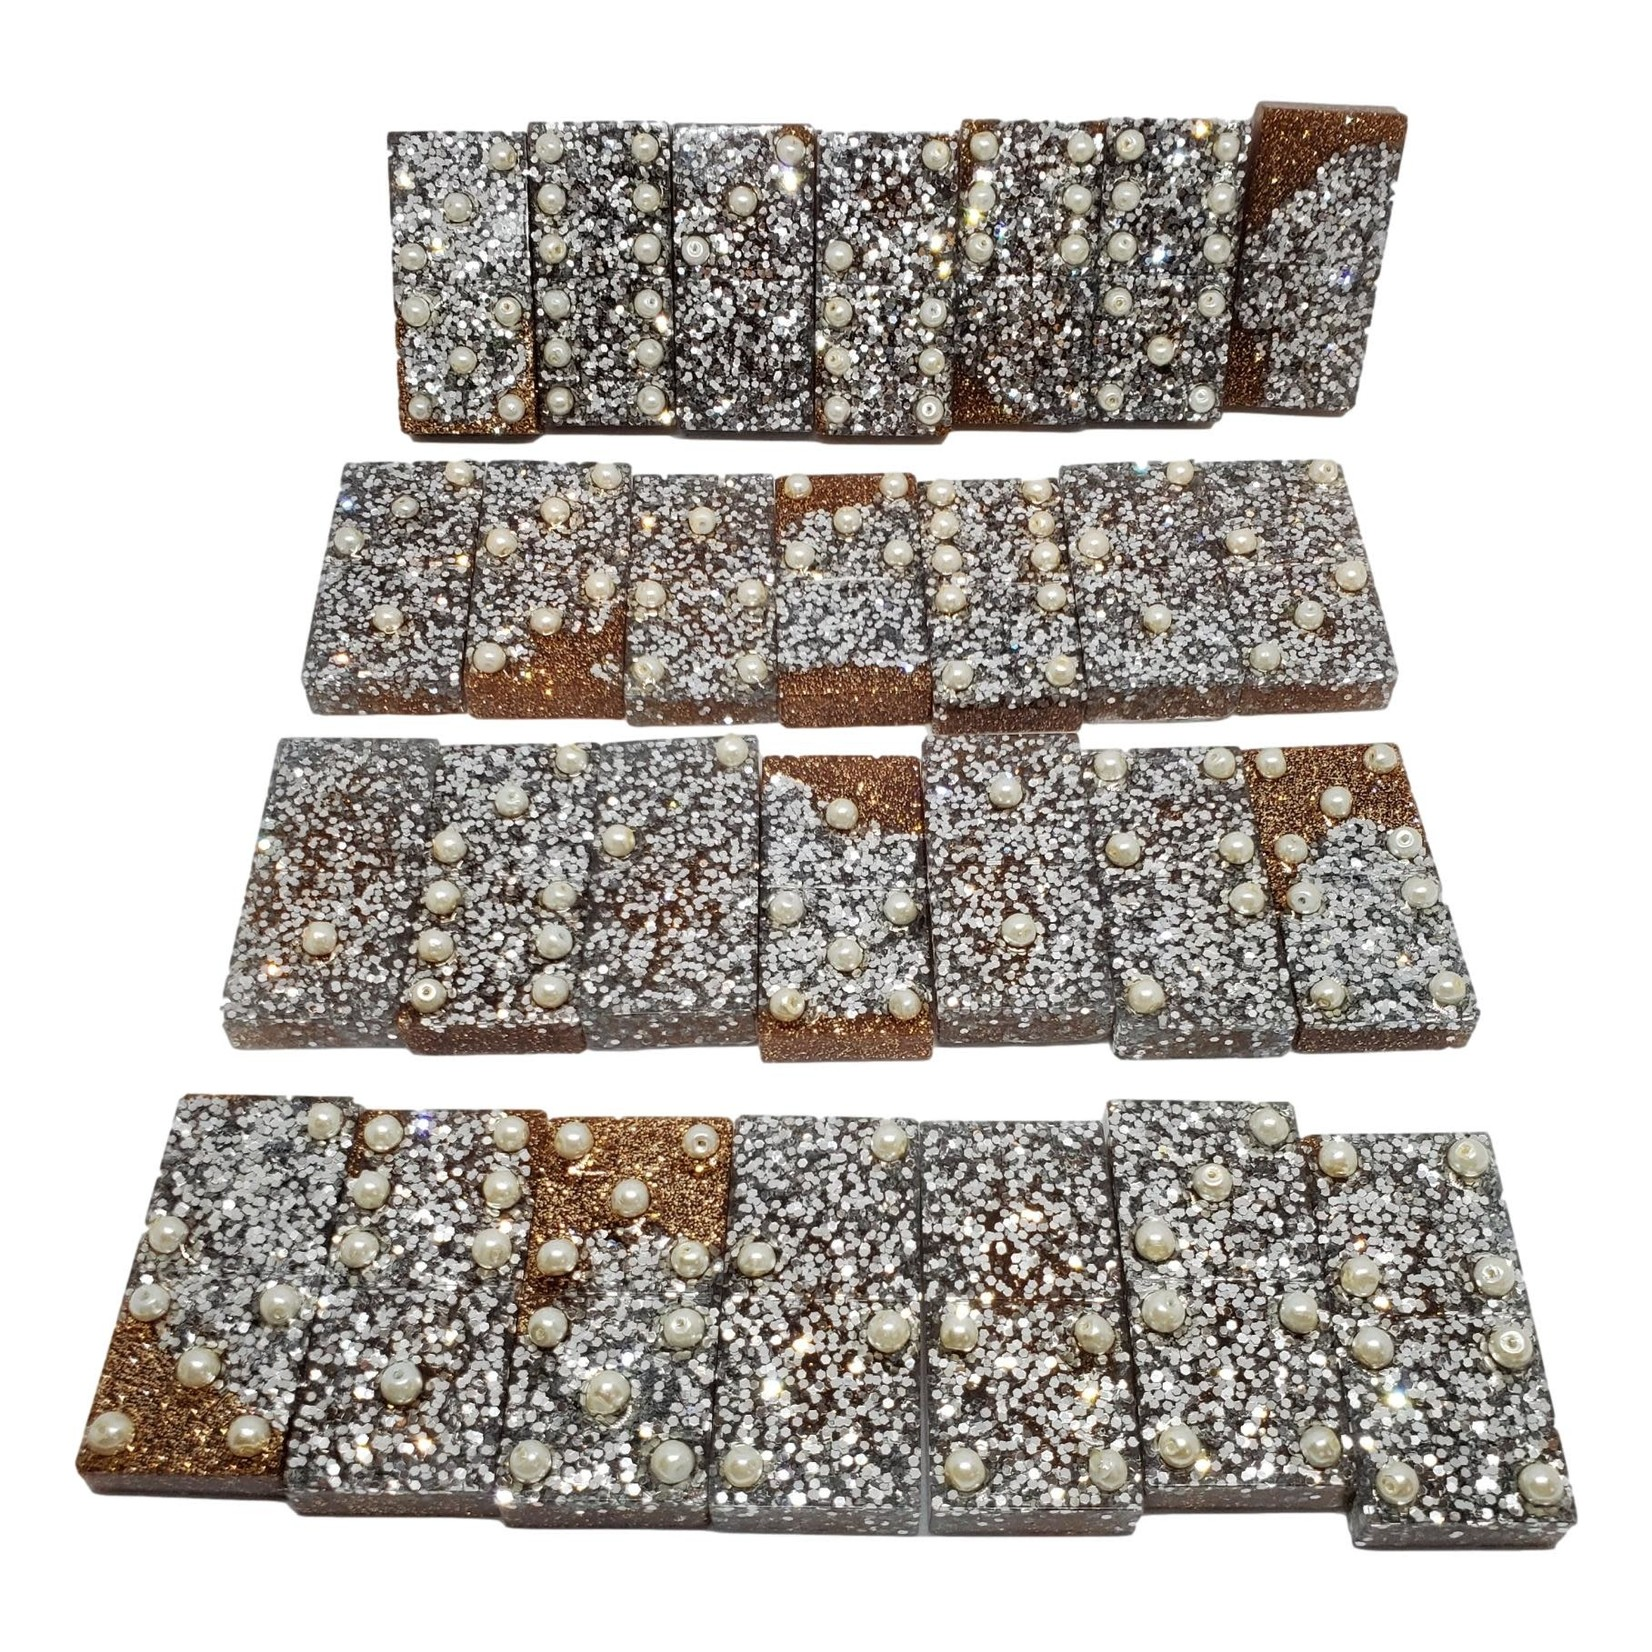 East Coast Sirens Gold & Silver 28-piece Resin Domino Game Tiles